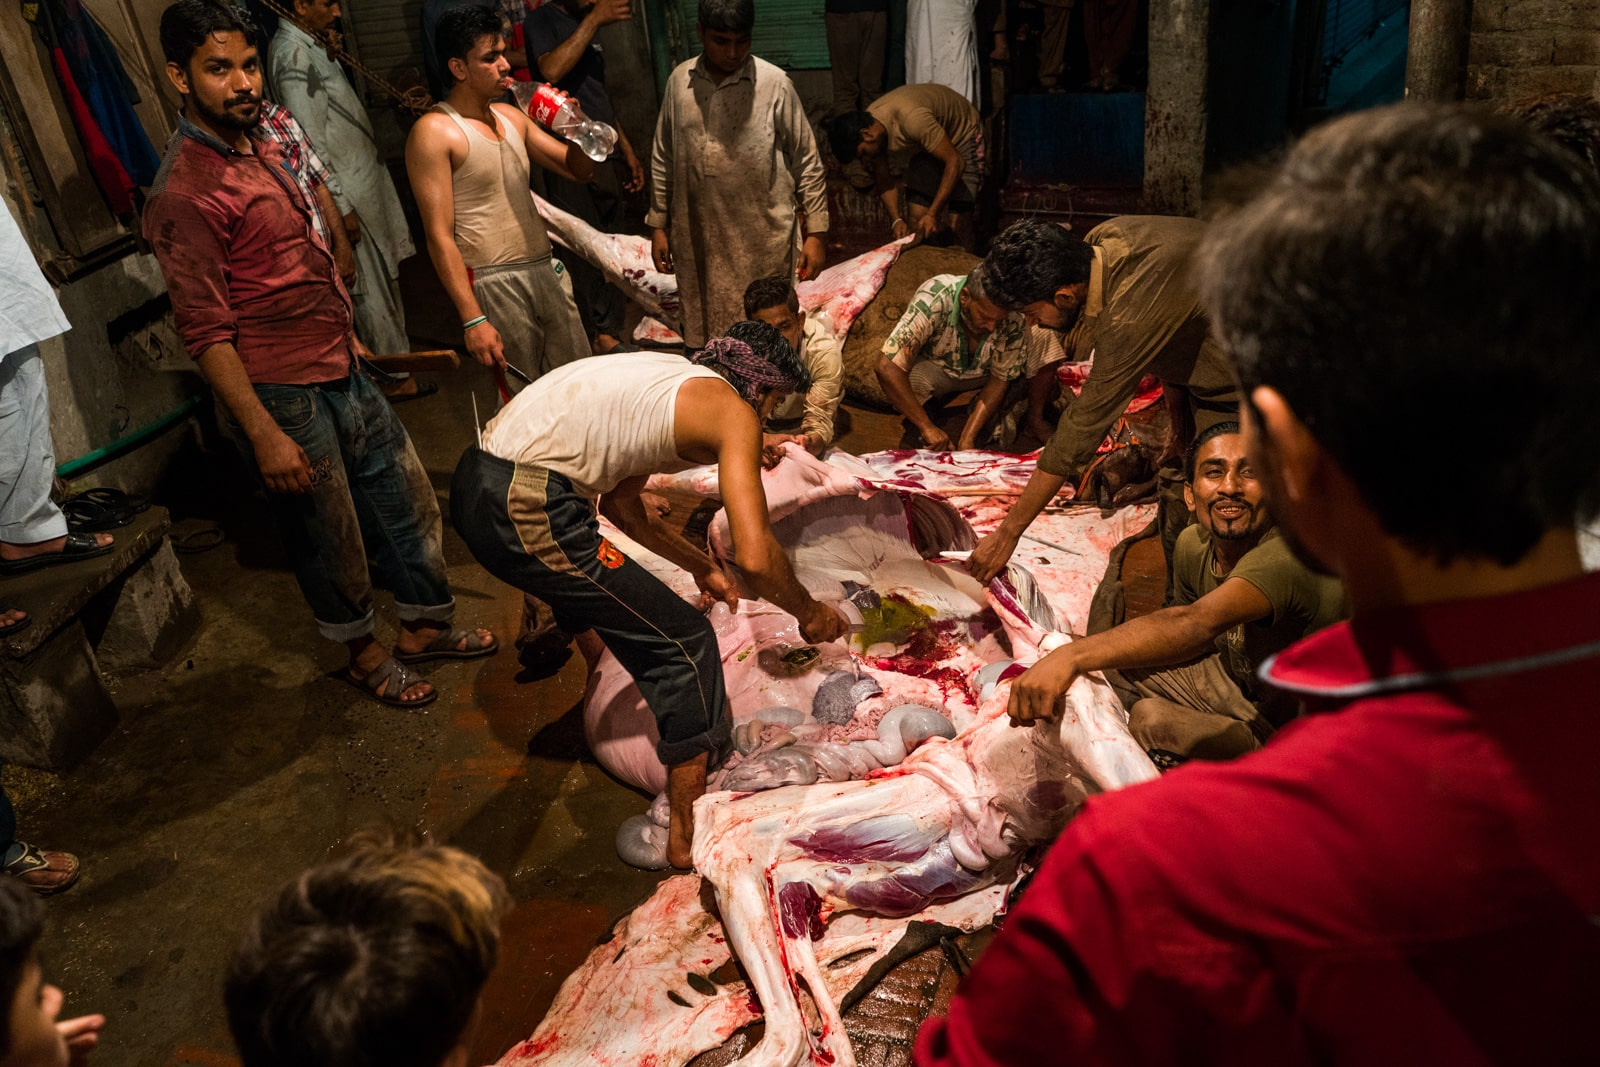 Celebrating Eid al-Adha in Lahore, Pakistan - Opened camel body and intestines - Lost With Purpose travel blog